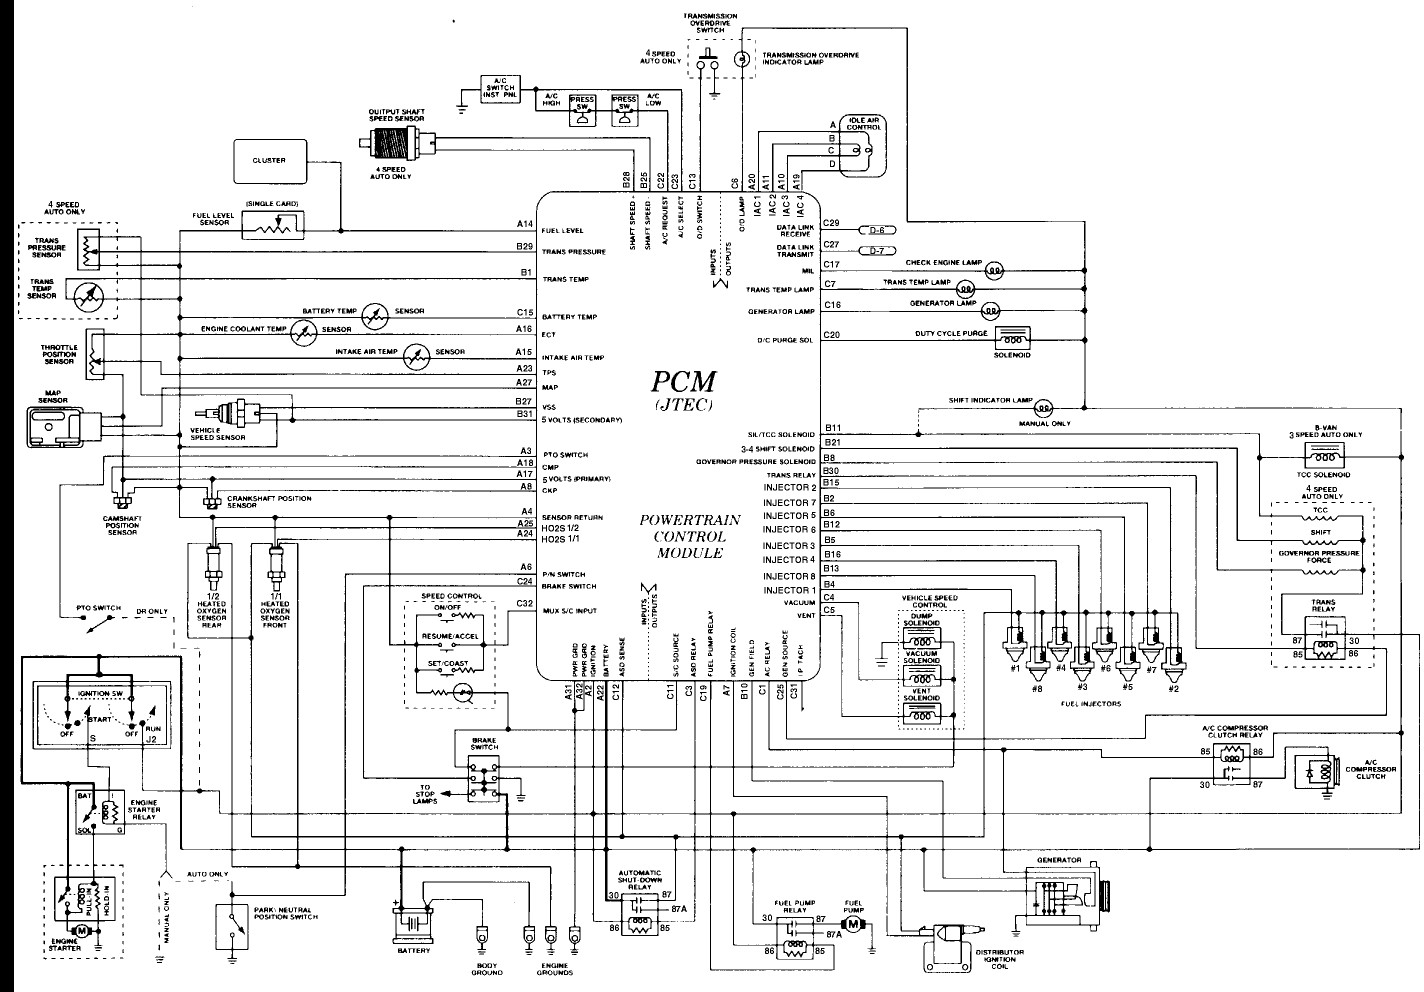 pilz pnoz x1 wiring diagram Download-dodge ram wiring harness diagram Collection dodge ram wiring diagrams natebird me rh natebird me 10-k